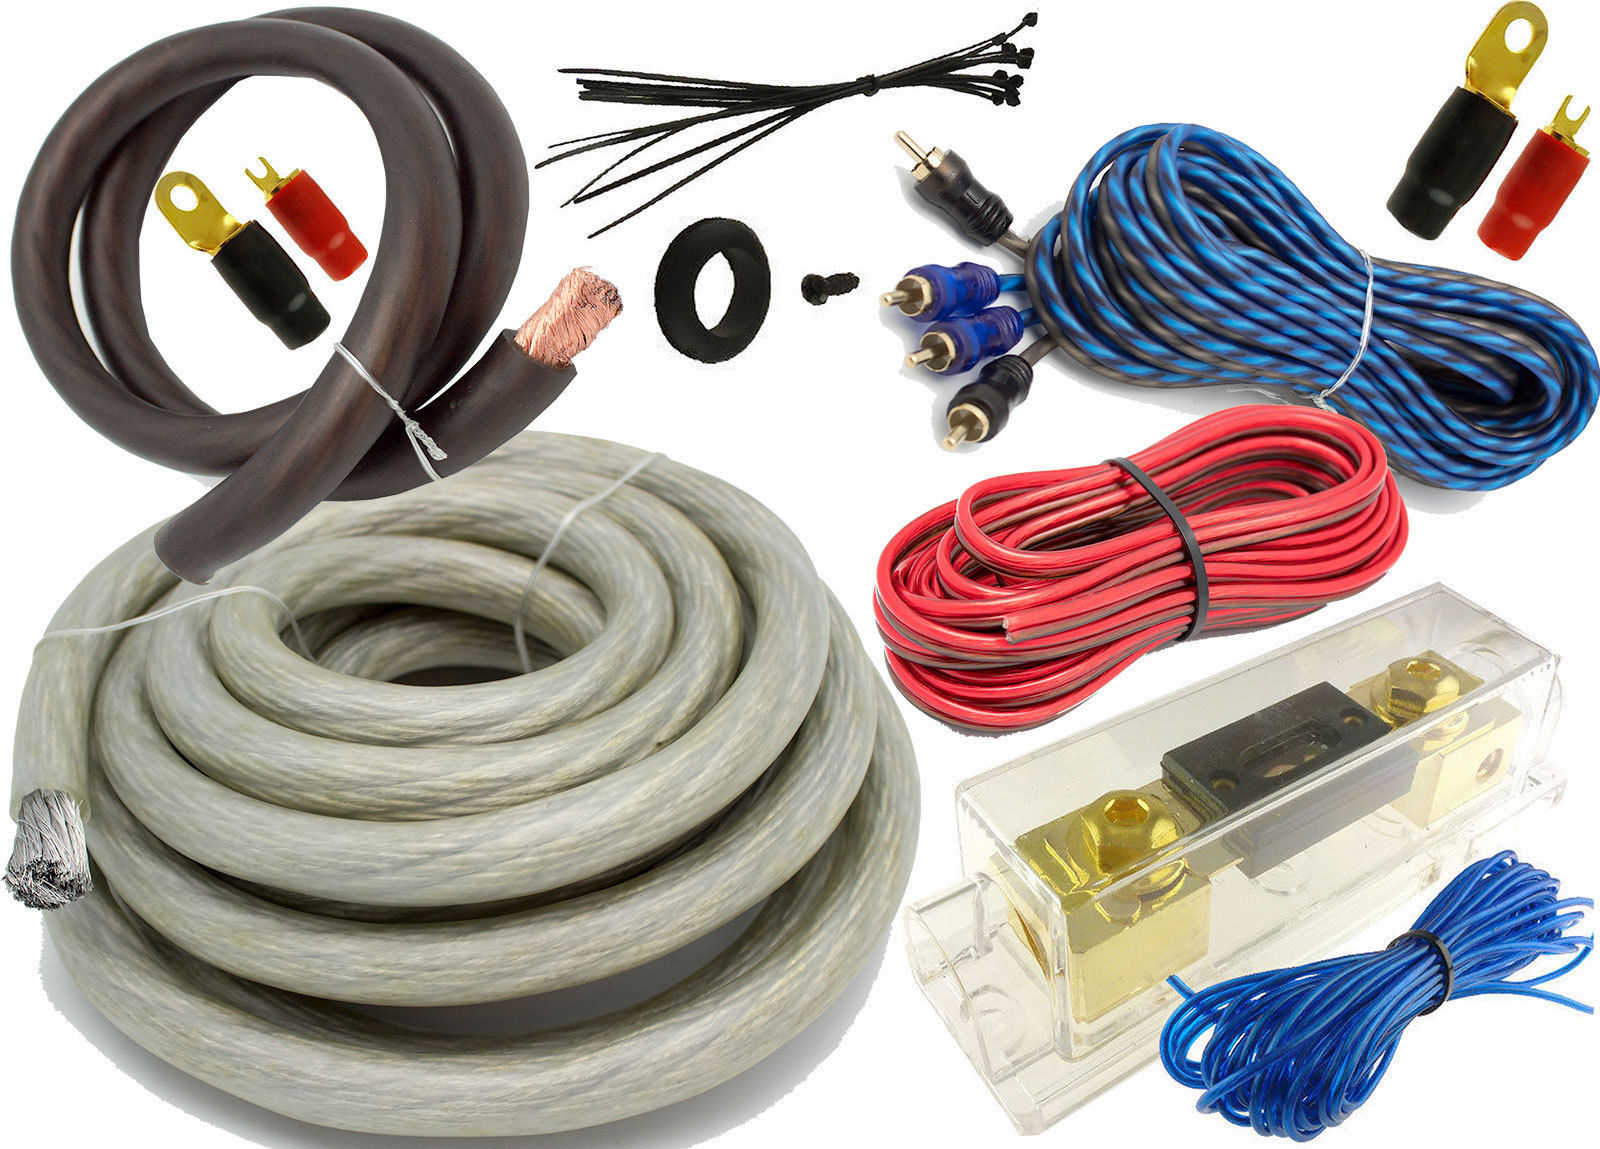 Car Amp Wiring Kit 0 Gauge Solutions Silver 5500 Watt Pro Complete And 12 Similar Items